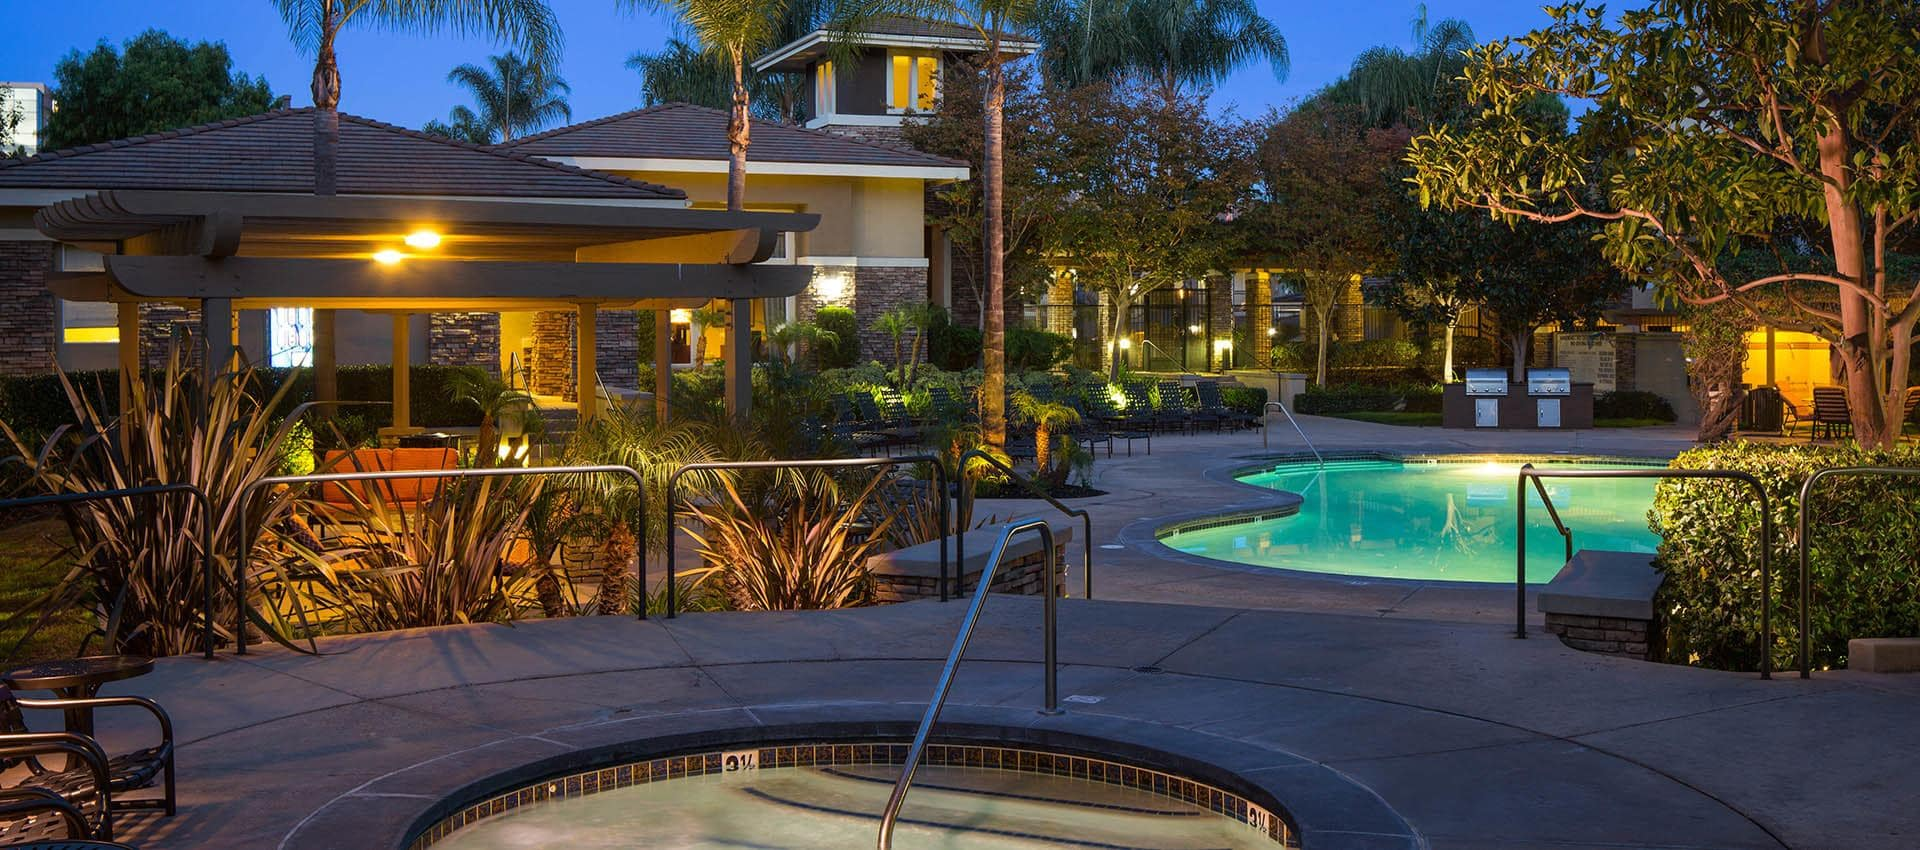 Expansive Pool Deck With Spa in Alize at Aliso Viejo Apartment Homes in Aliso Viejo, California